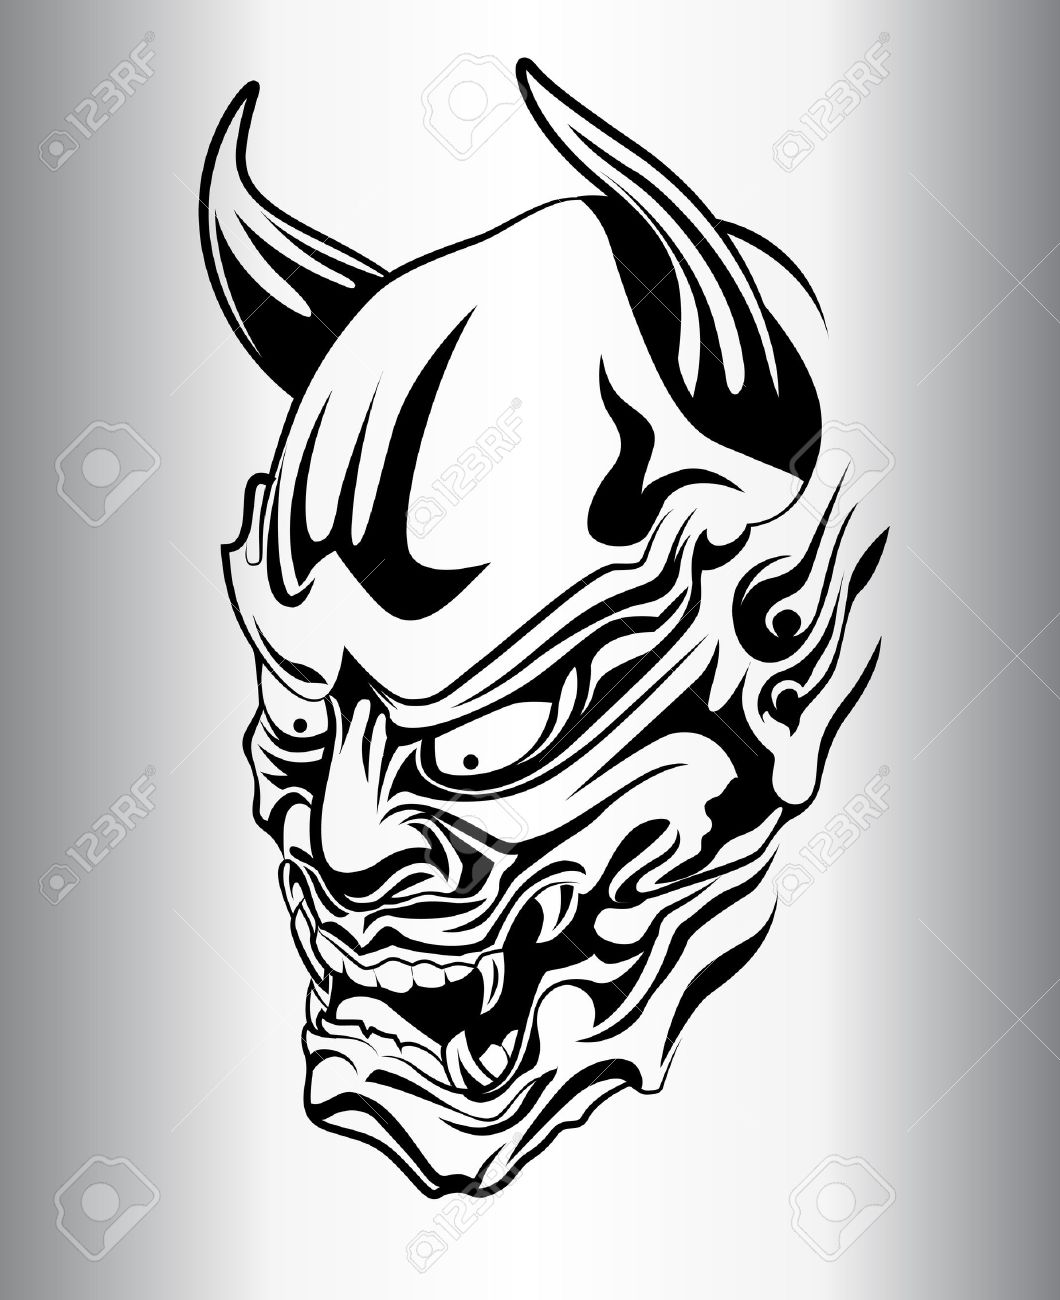 1060x1300 Japanese Ghost , Satan, Silhouette Royalty Free Cliparts, Vectors